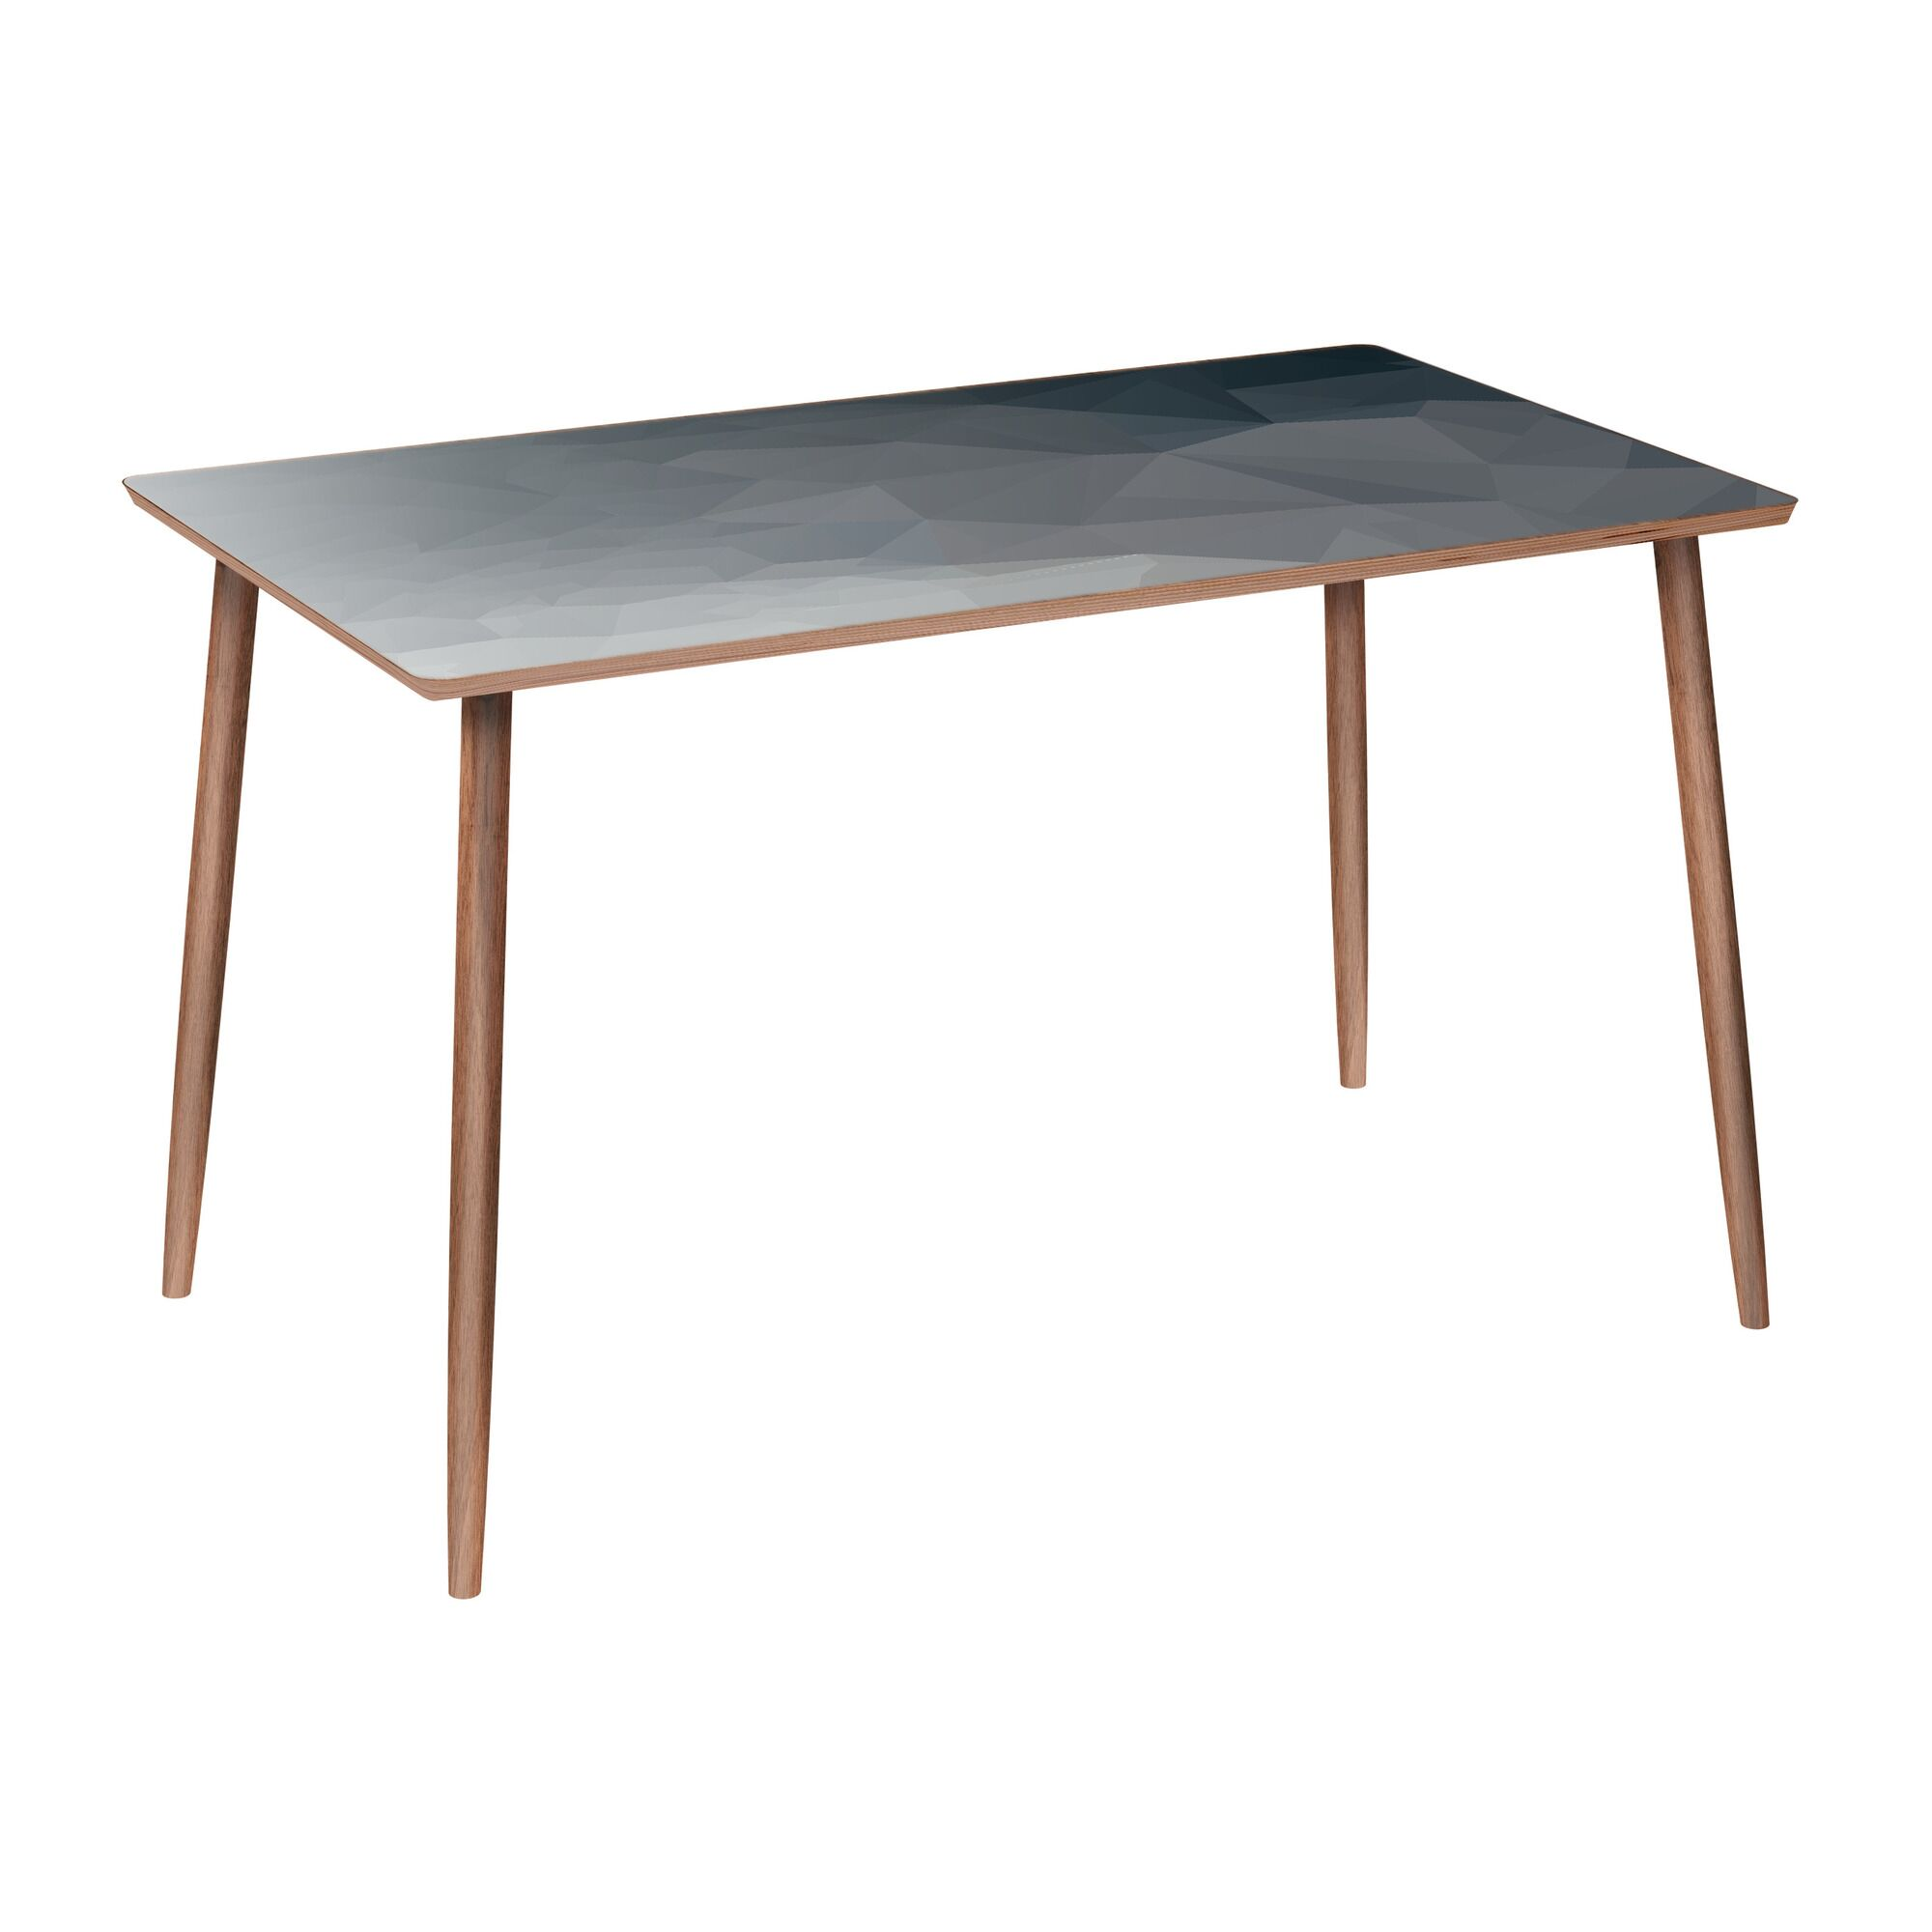 Luxton Dining Table Table Base Color: Walnut, Table Top Color: Gray/Black